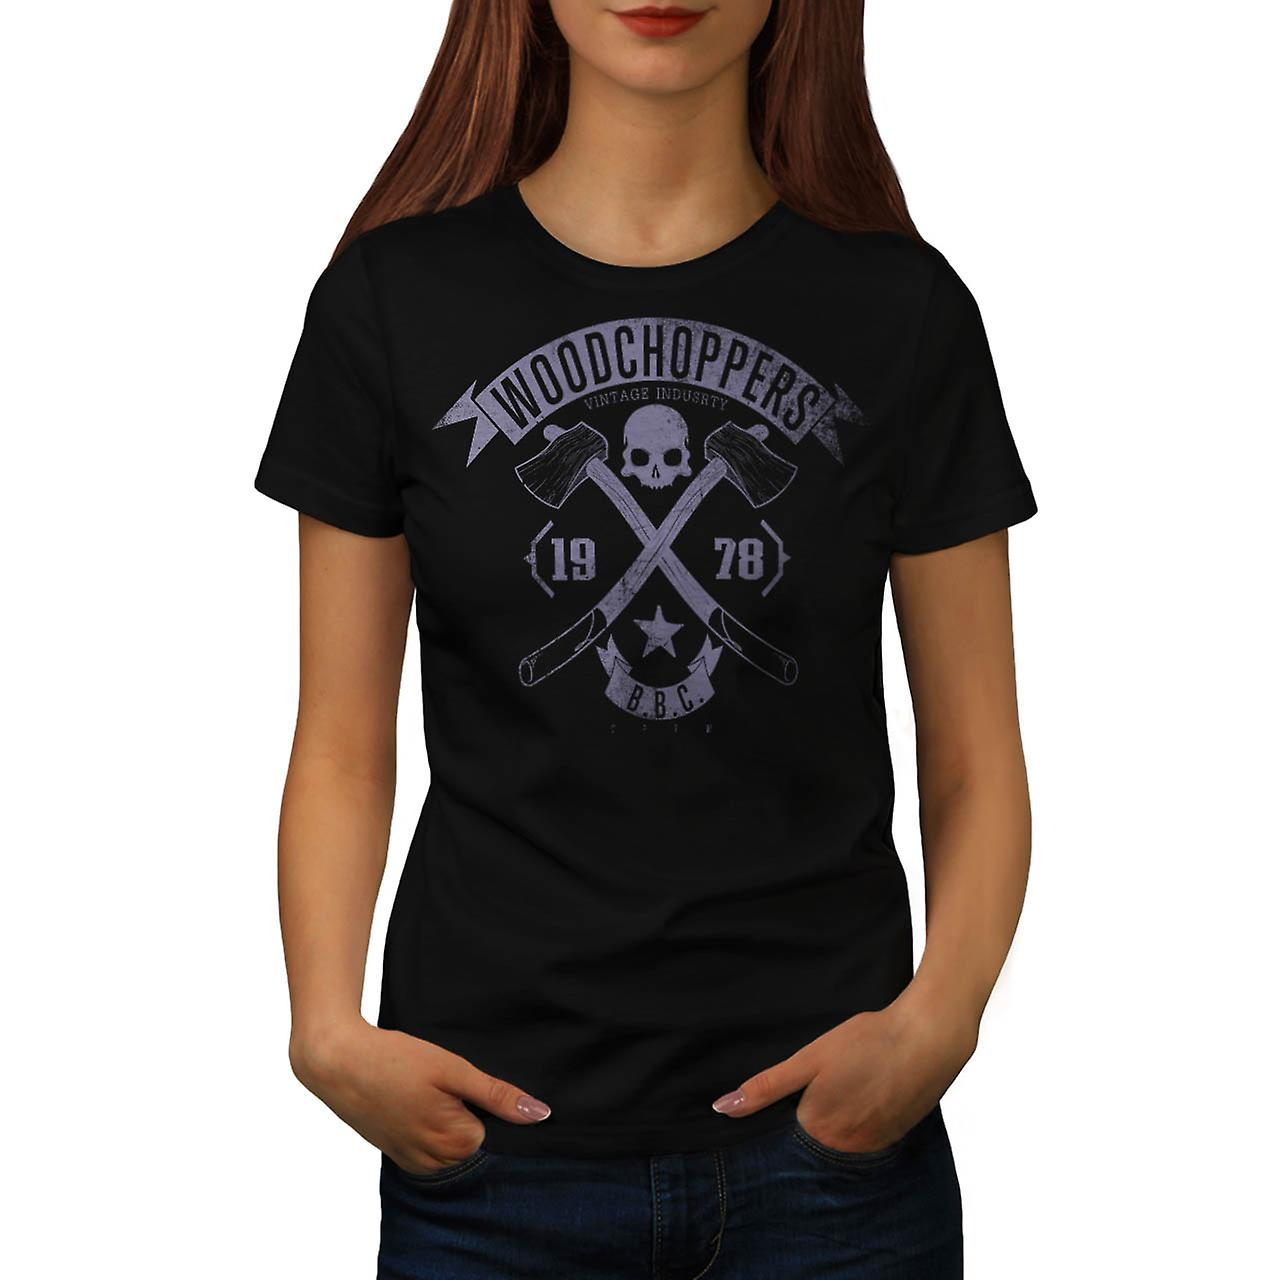 Woodchoppers Club Vintage Women Black T-shirt | Wellcoda